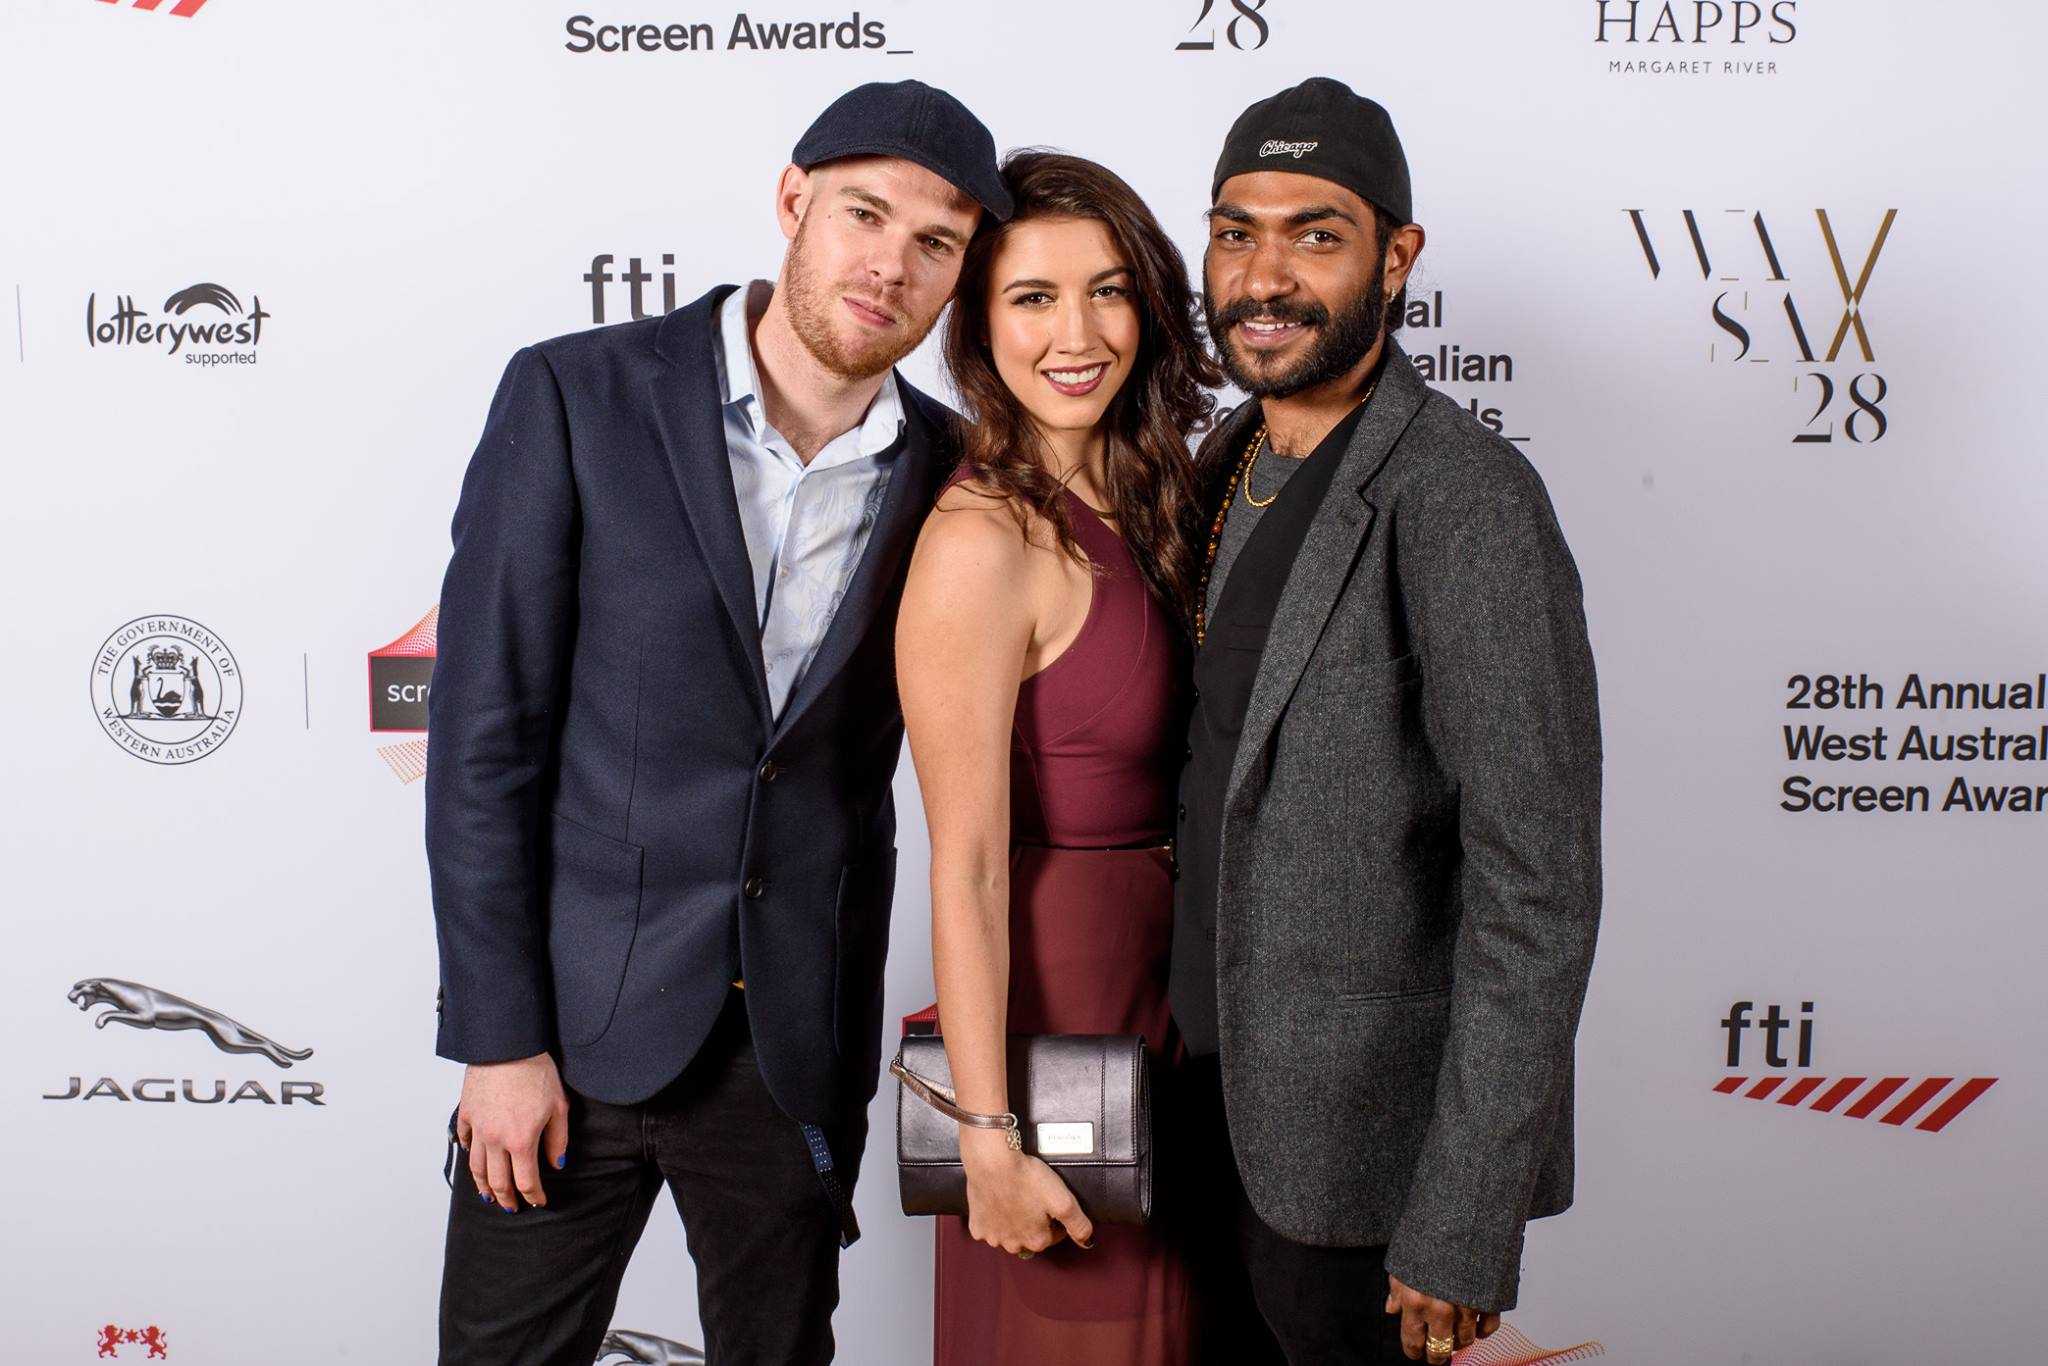 David Vincent Smith, Alexandra Nell and Clarence Ryan at the West Australian Screen Awards